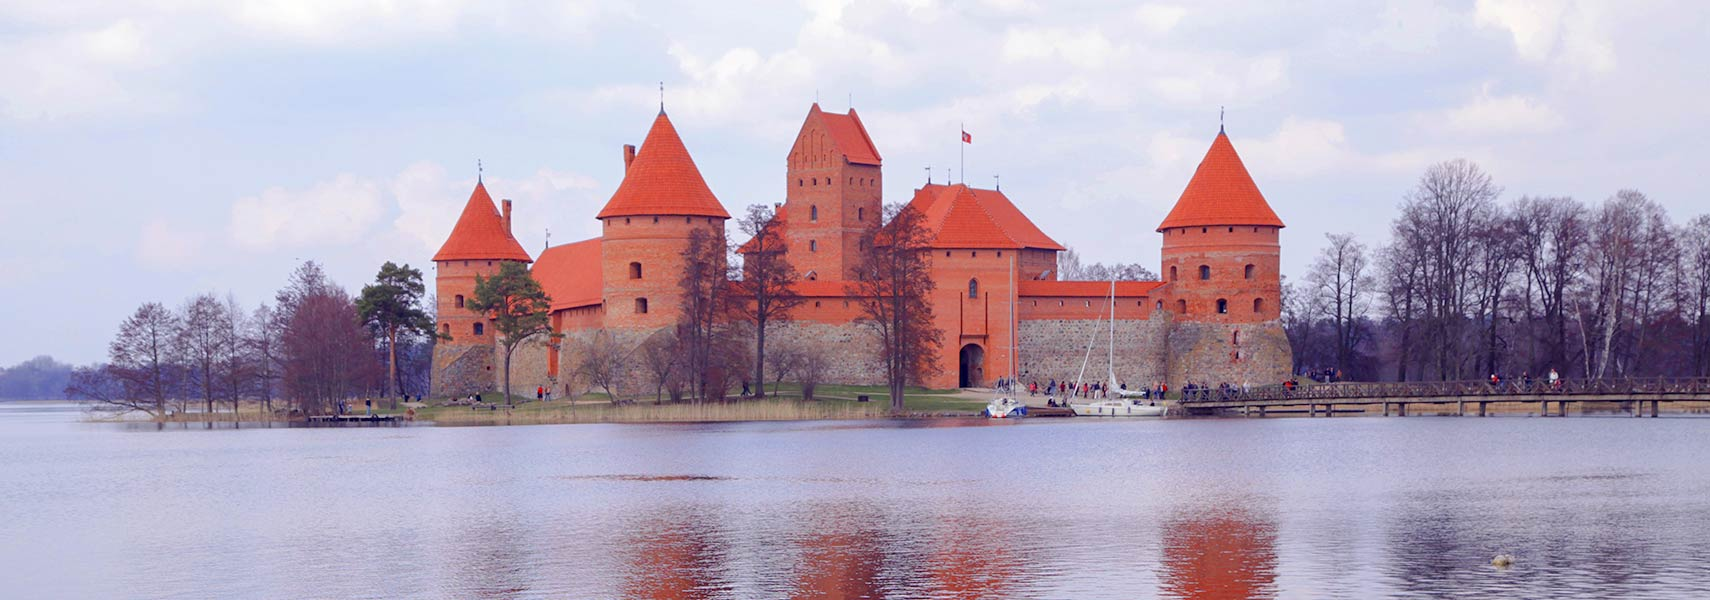 Trakai Castle panorama